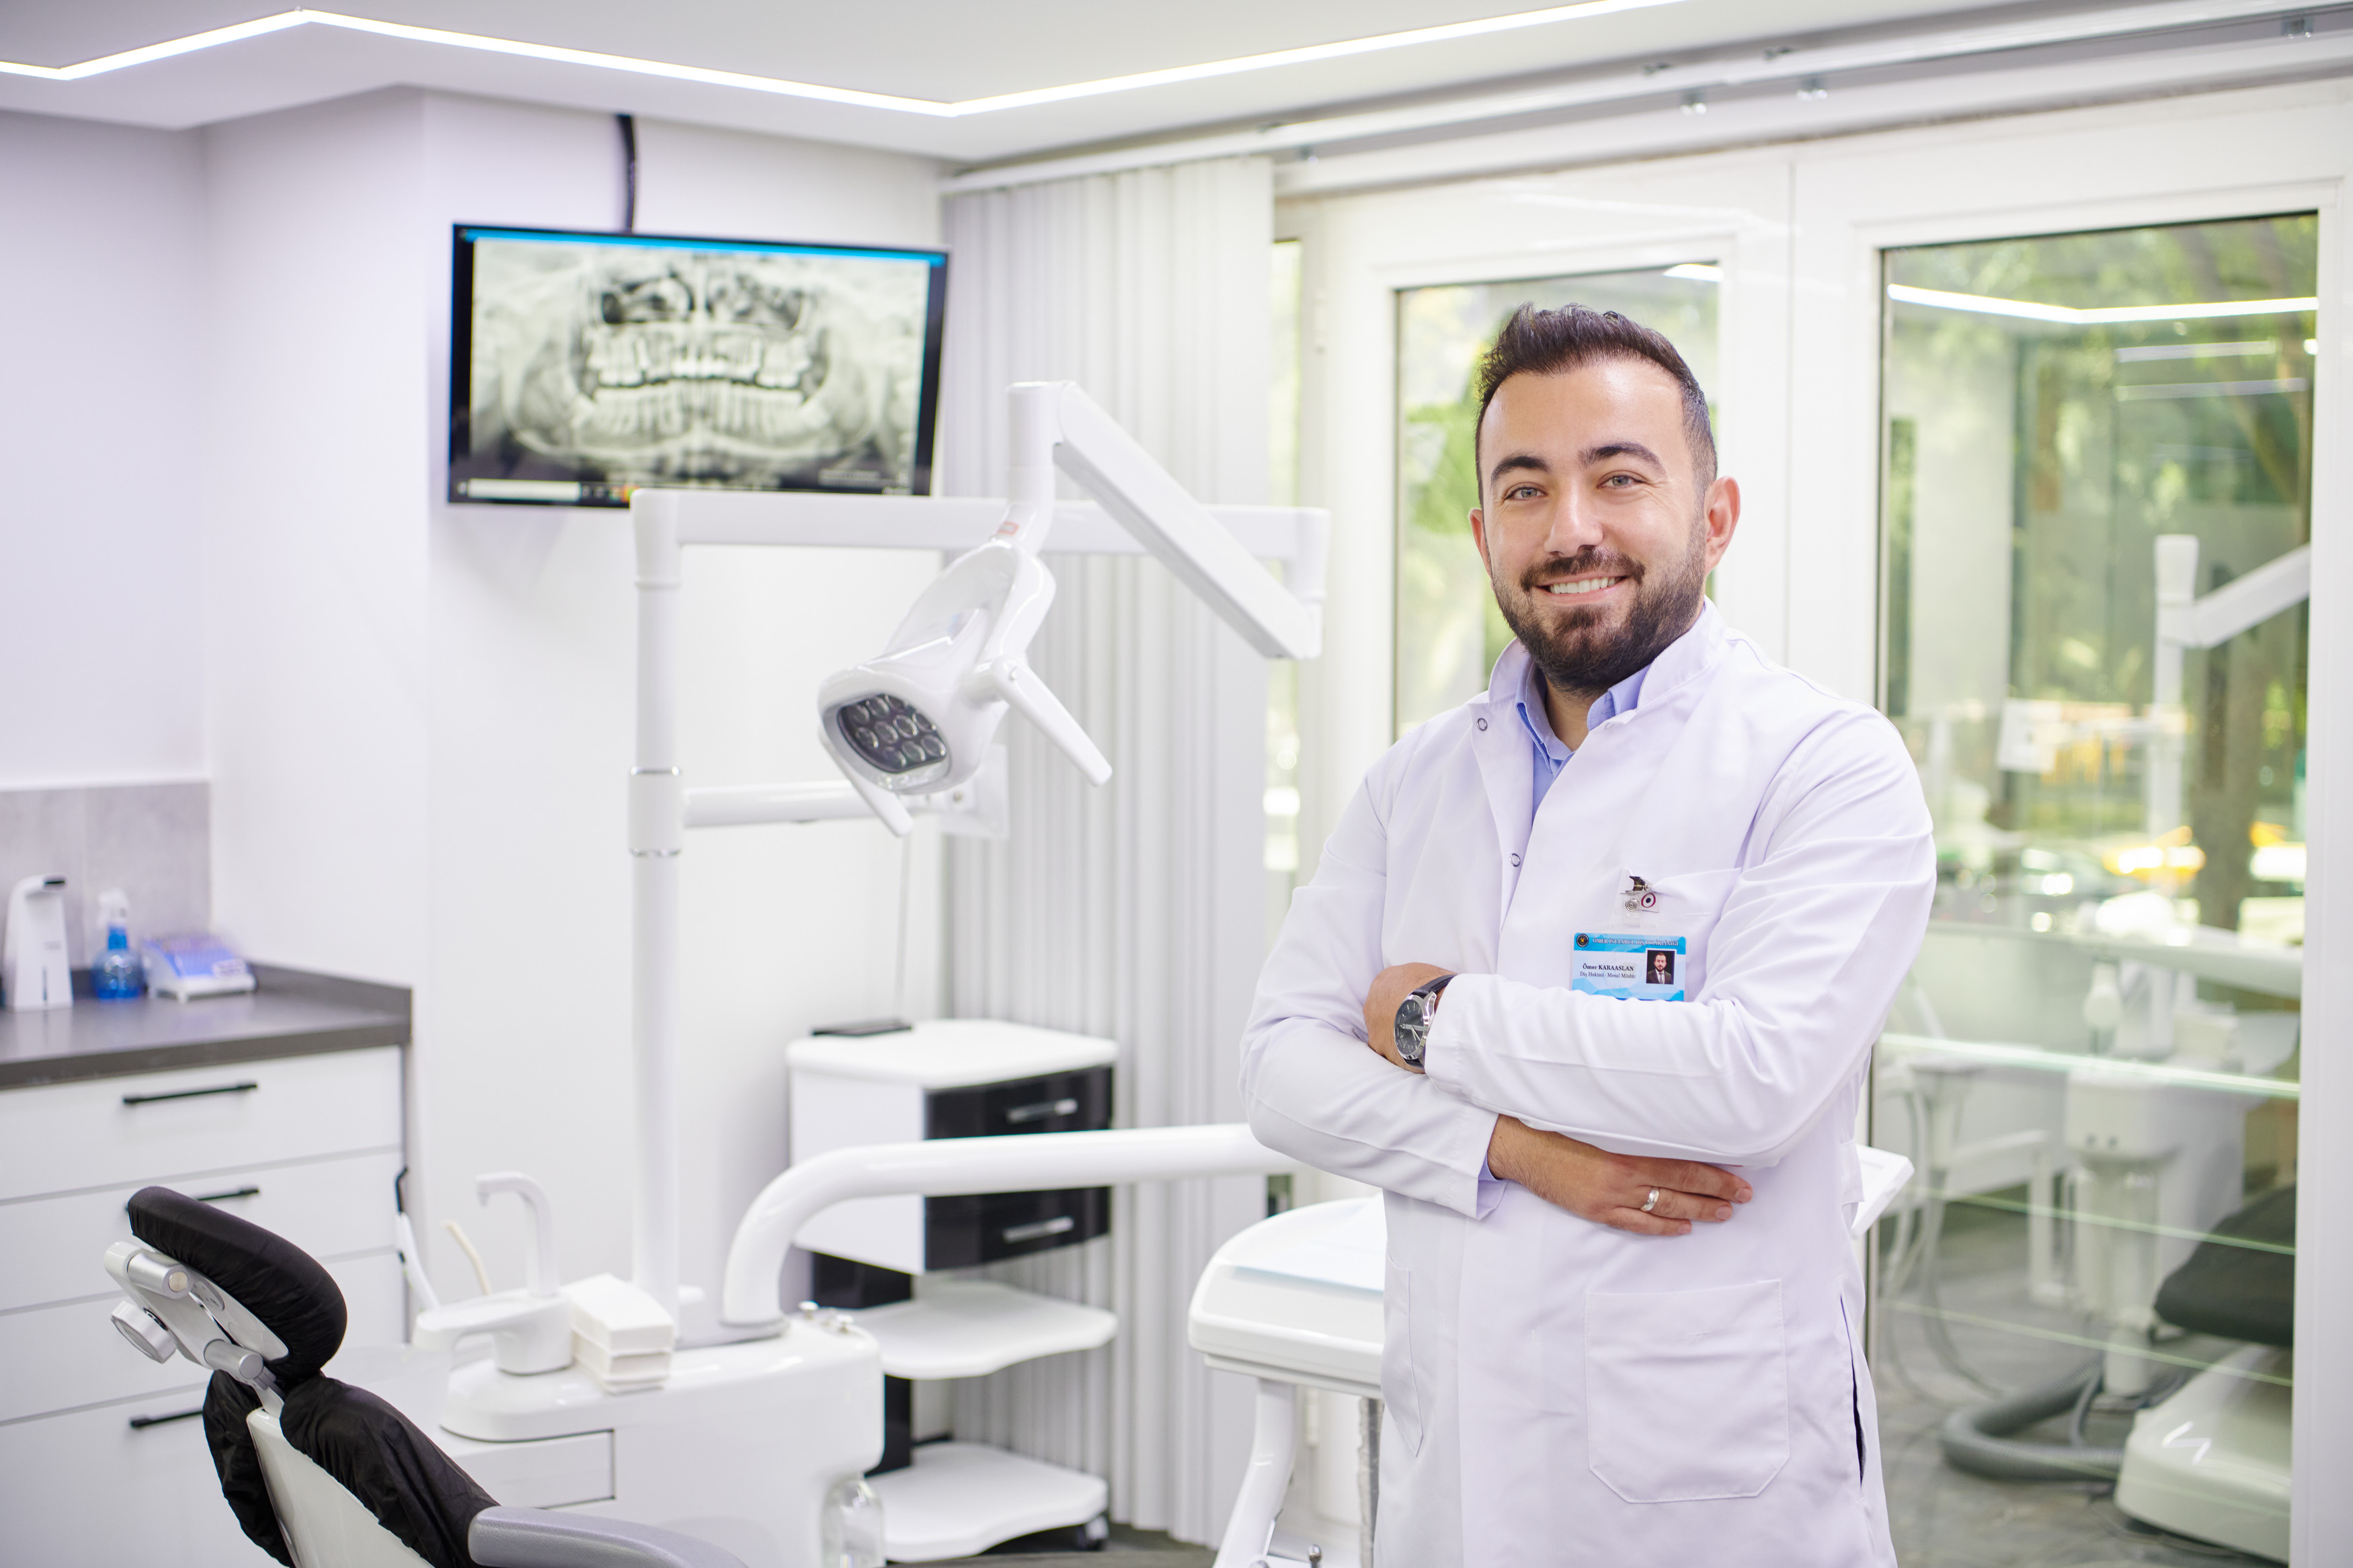 Omer Istanbul Dental Center Praised As Most Reliable and Affordable Dental Center for Foreign Patients